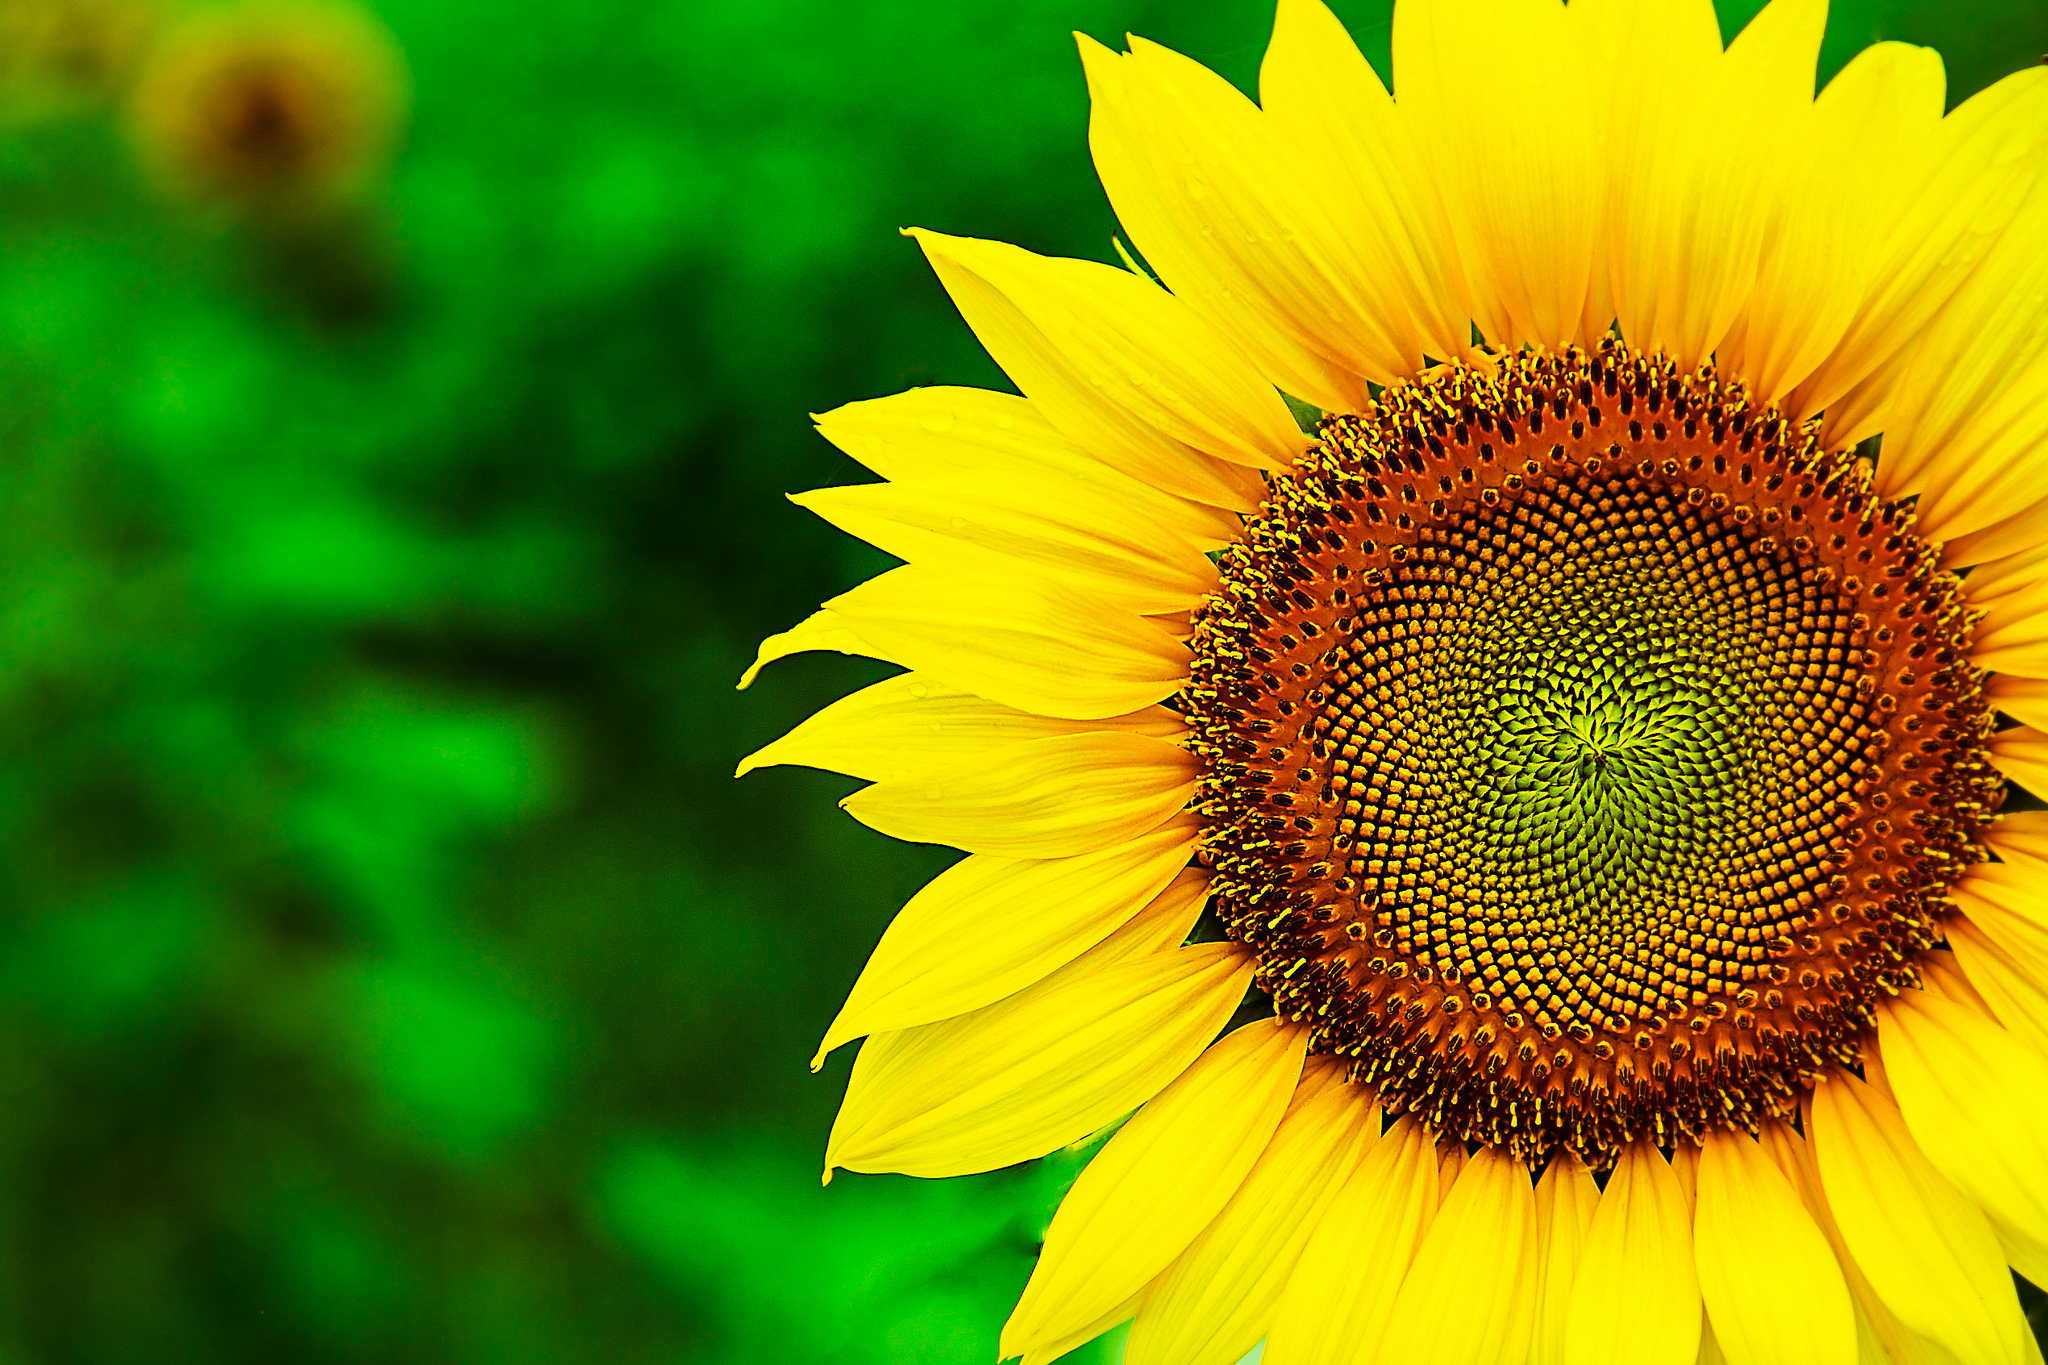 HD Wallpaper | Background Image ID:433469. 2048x1365 Earth Sunflower